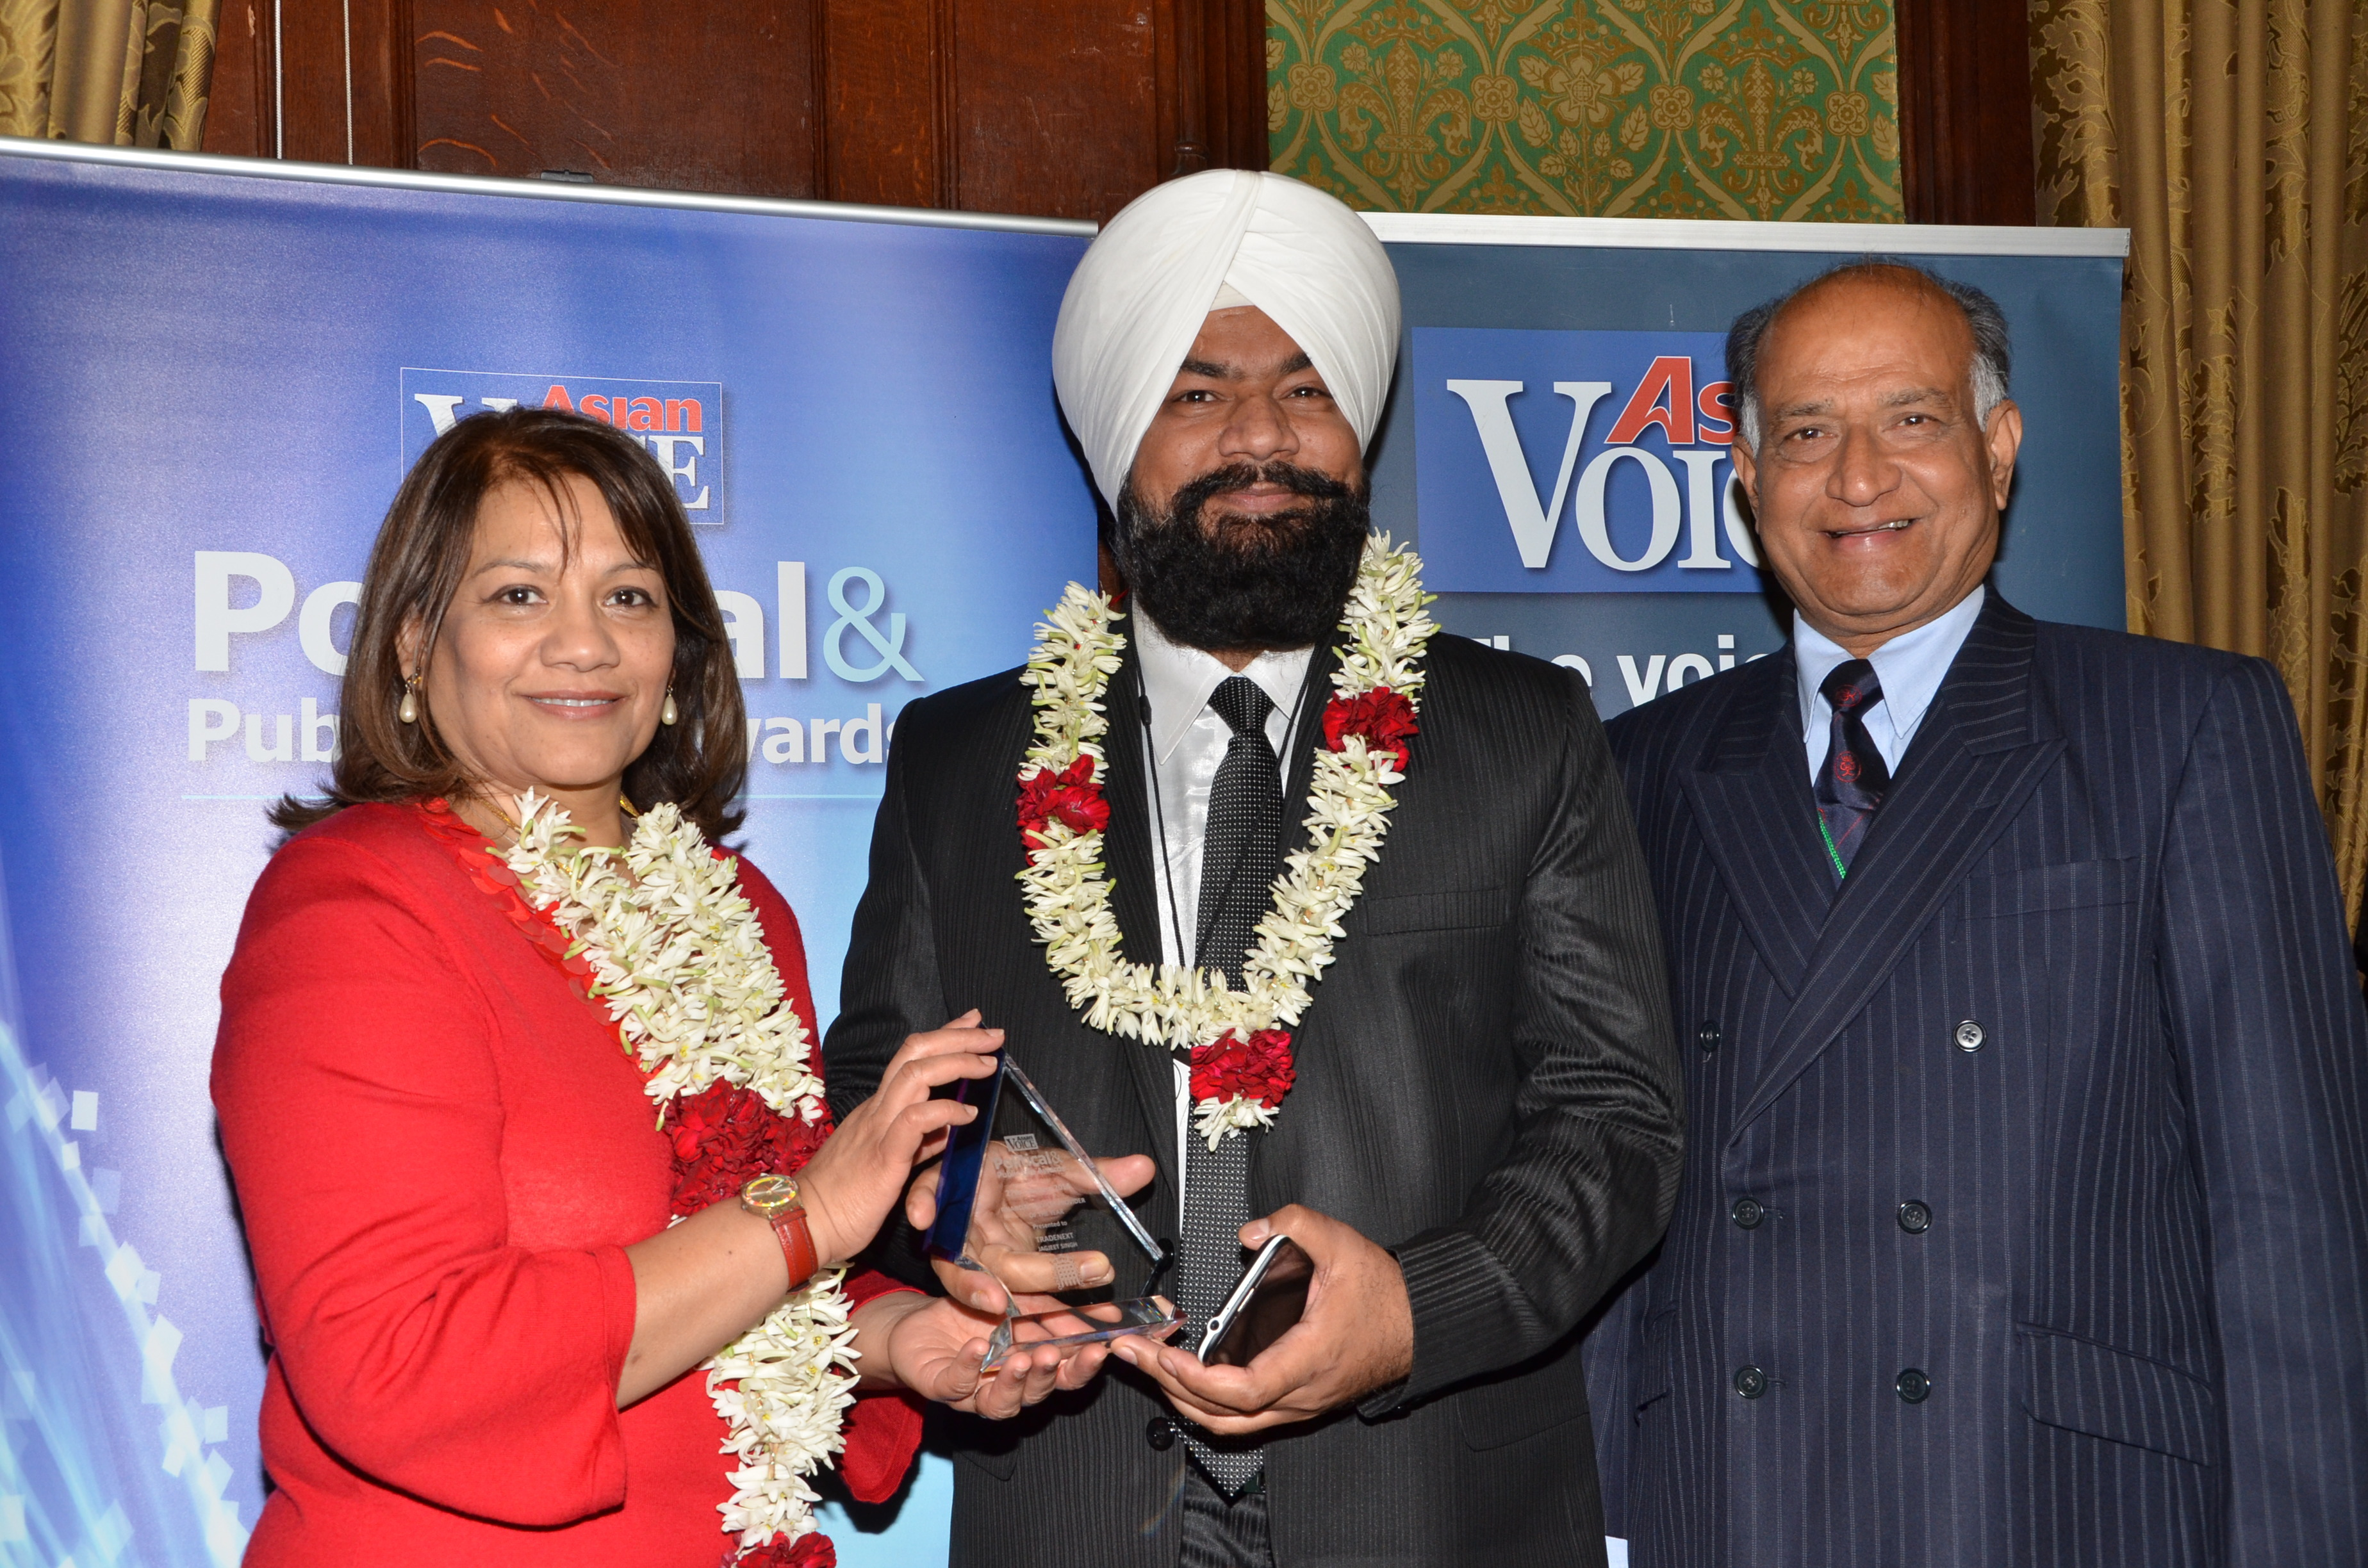 Valerie Vaz MP [Walsall South], Jagjeet Singh [Tradenext CEO] and CB Patel [Editor, Asian Voice]